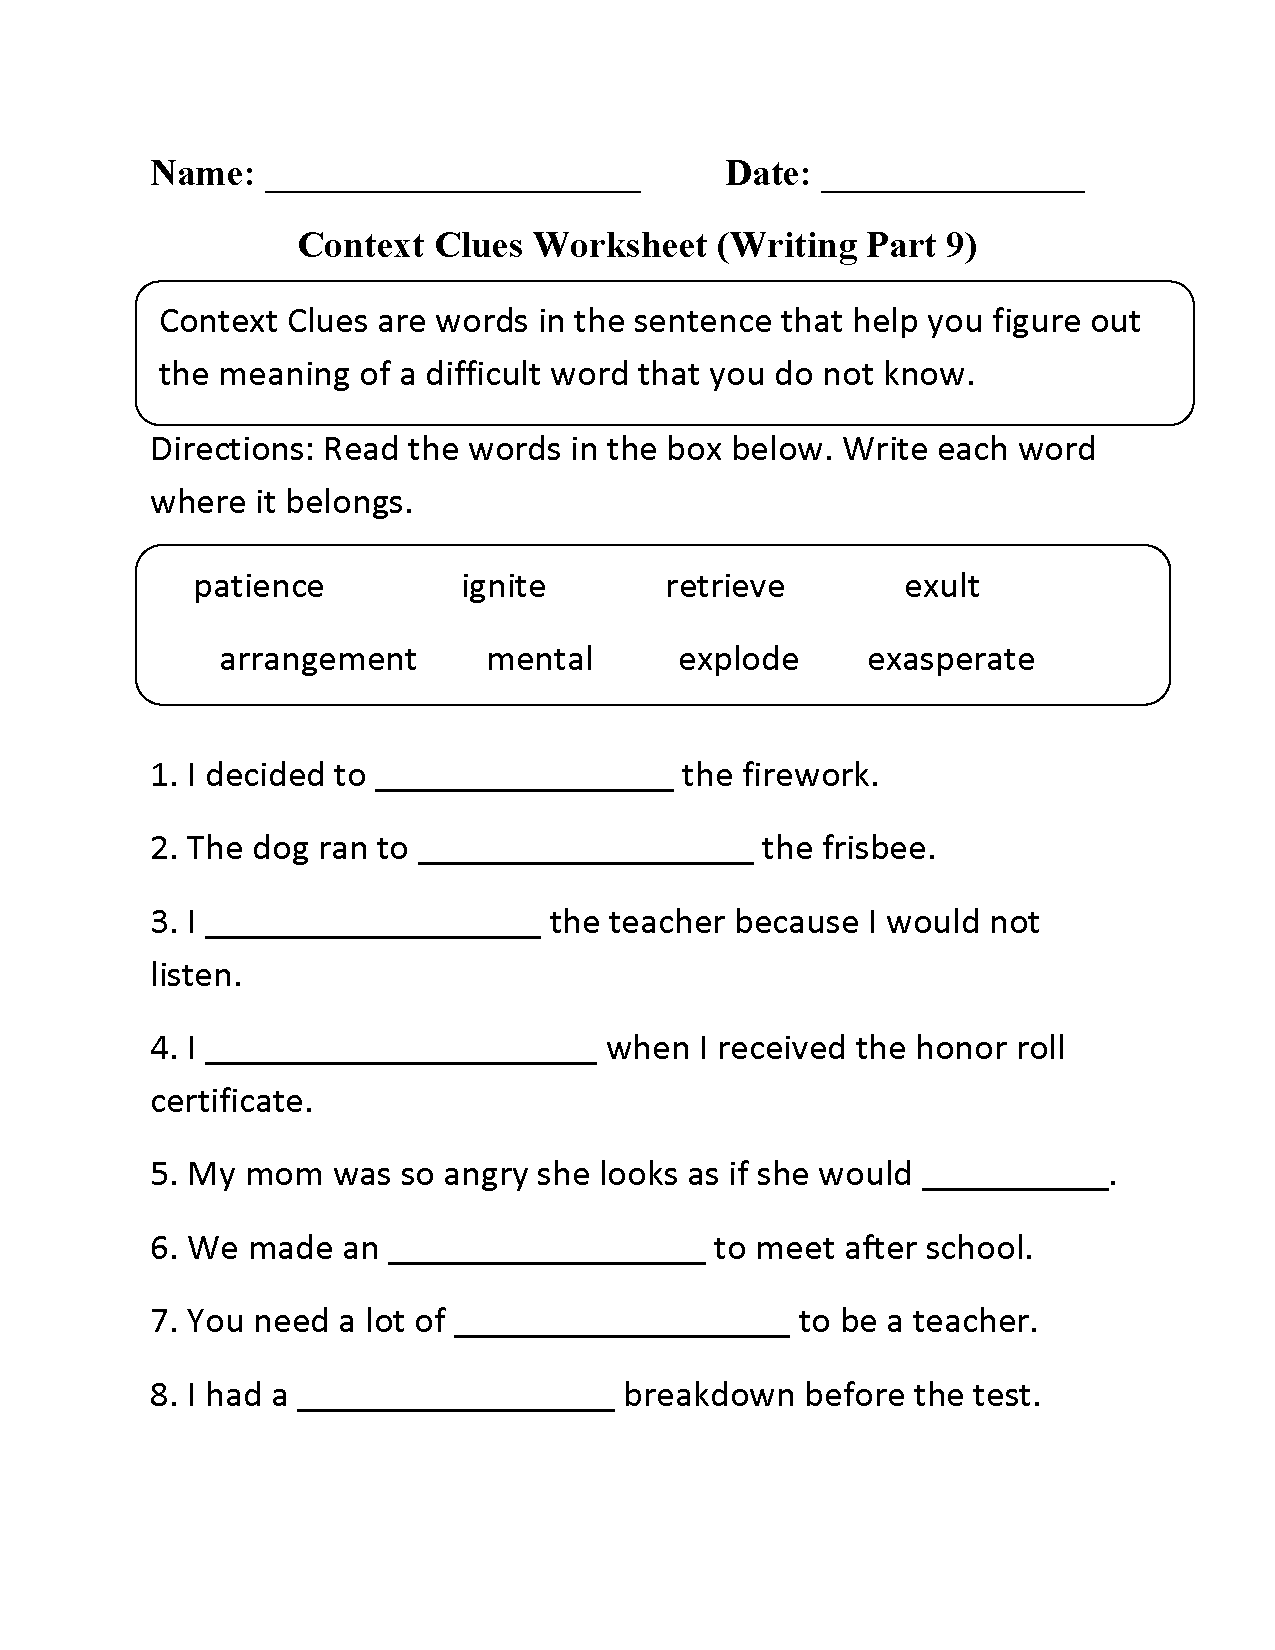 Free Worksheet Homophones Worksheet 5th Grade worksheet homophones worksheets pdf mikyu free 1000 images about context clues on pinterest